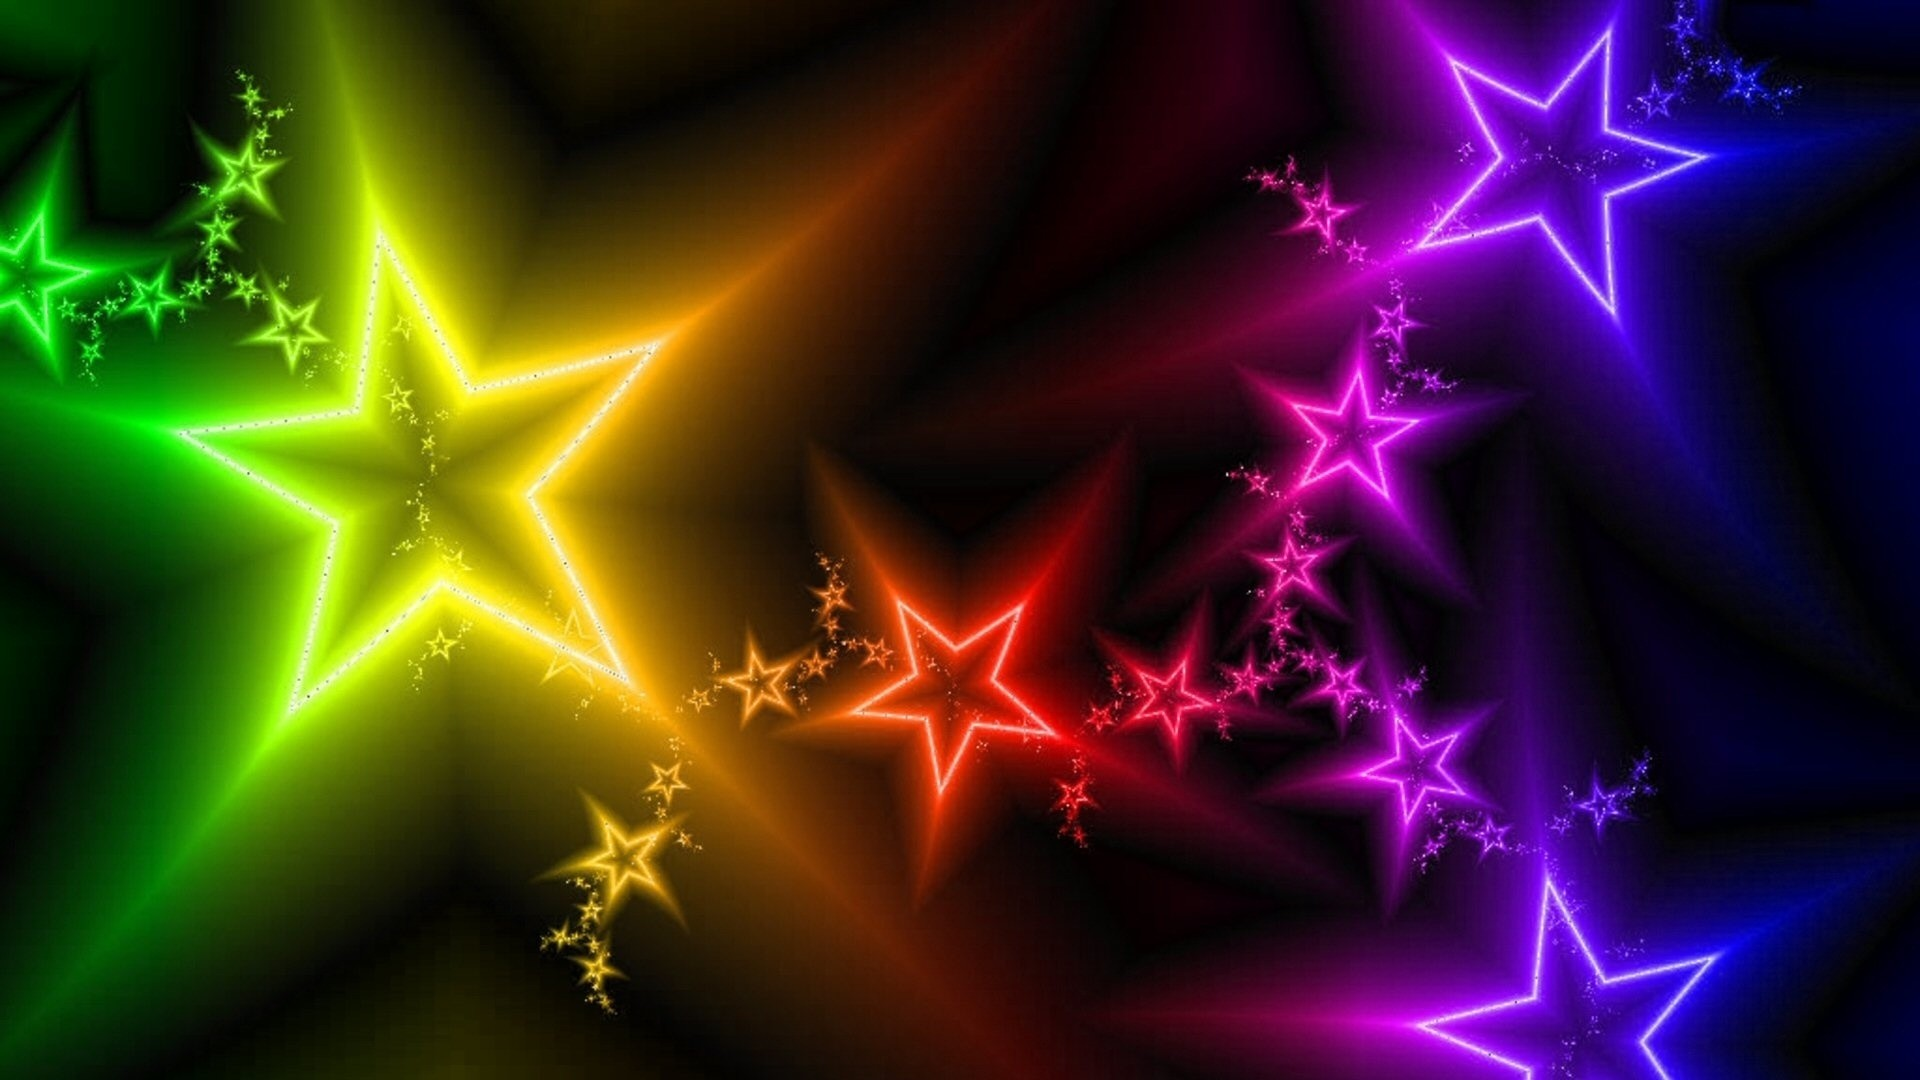 Res: 1920x1080, Colorful Stars Wallpapers wallpaper Colorful Stars Wallpapers hd